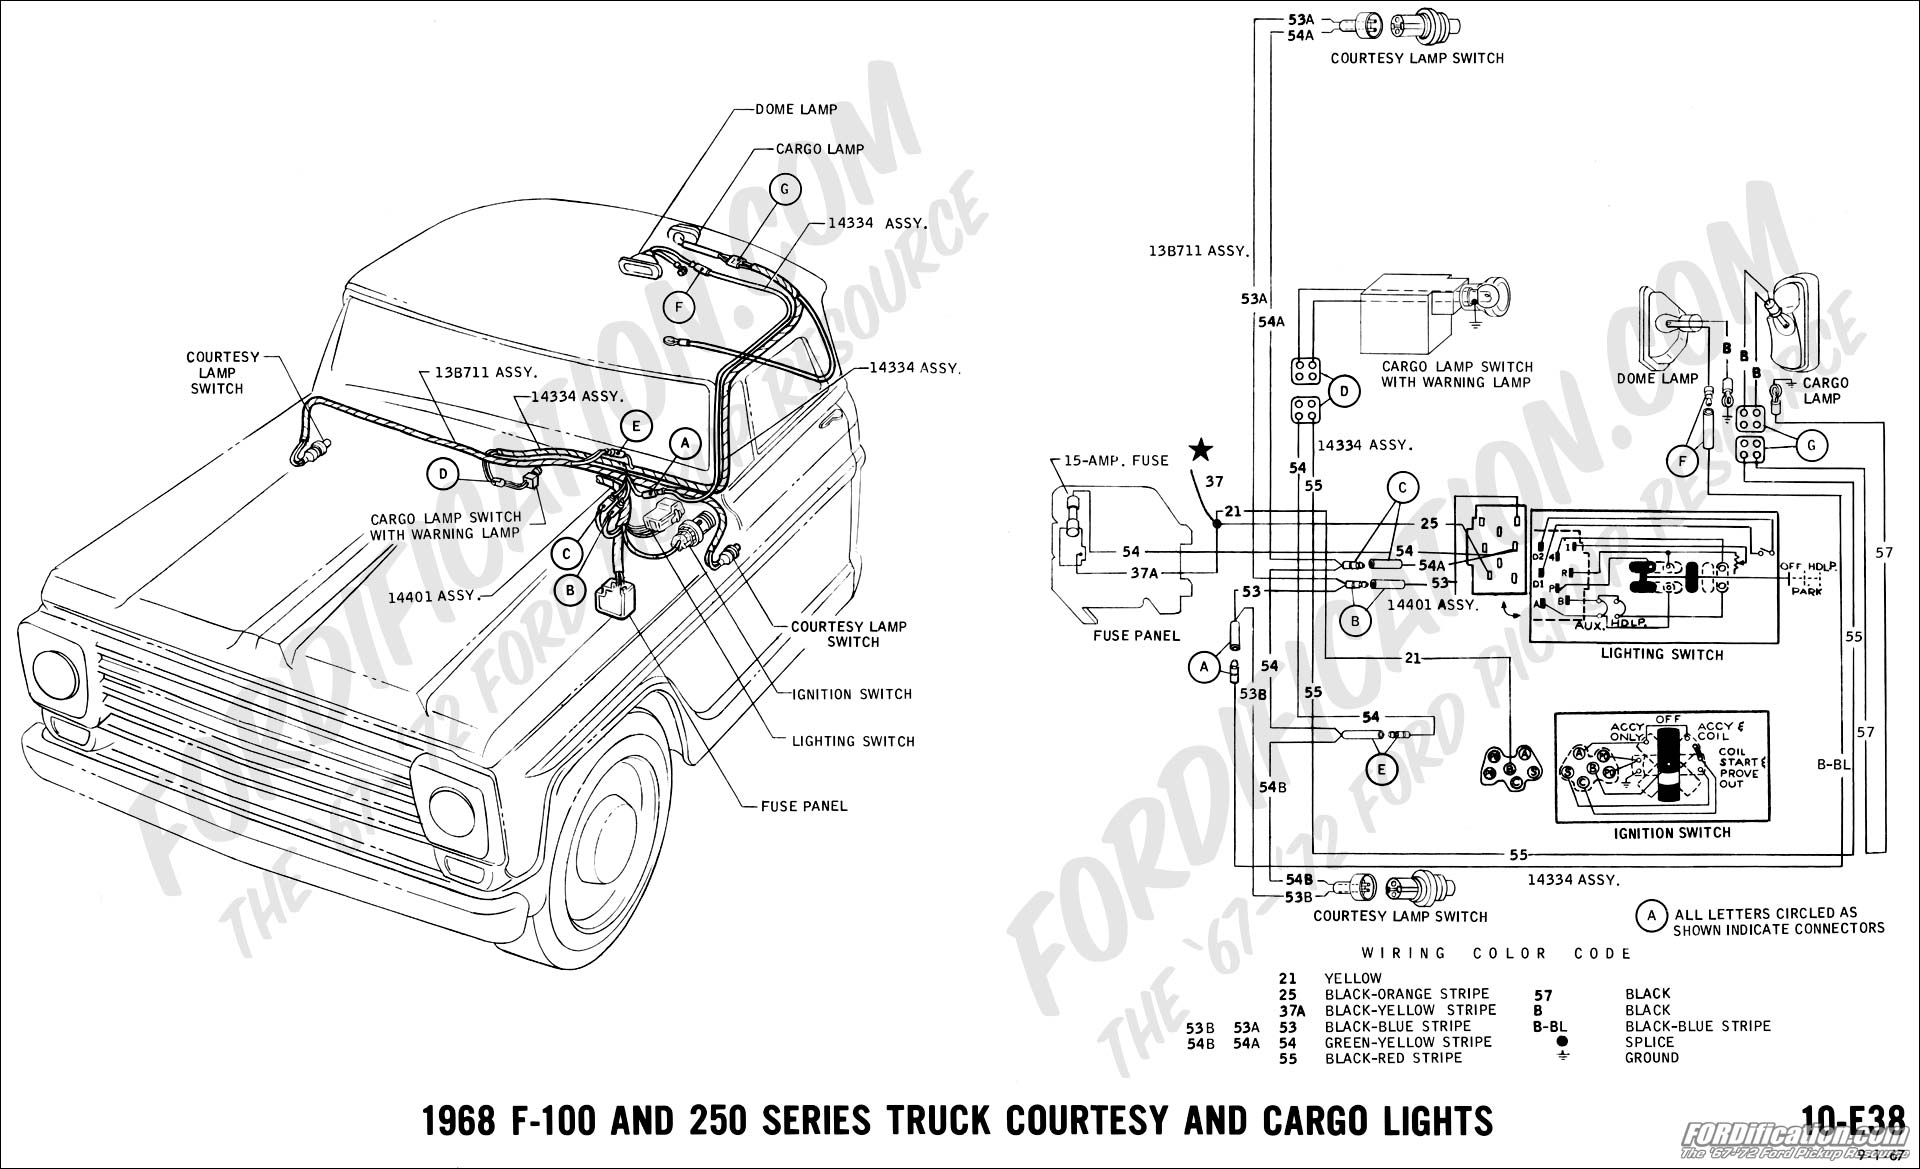 70 ford ignition wiring wiring diagram Ford Alternator Wiring Diagram ford truck technical drawings and schematics section h wiring1968 f 100 and f 250 courtesy and